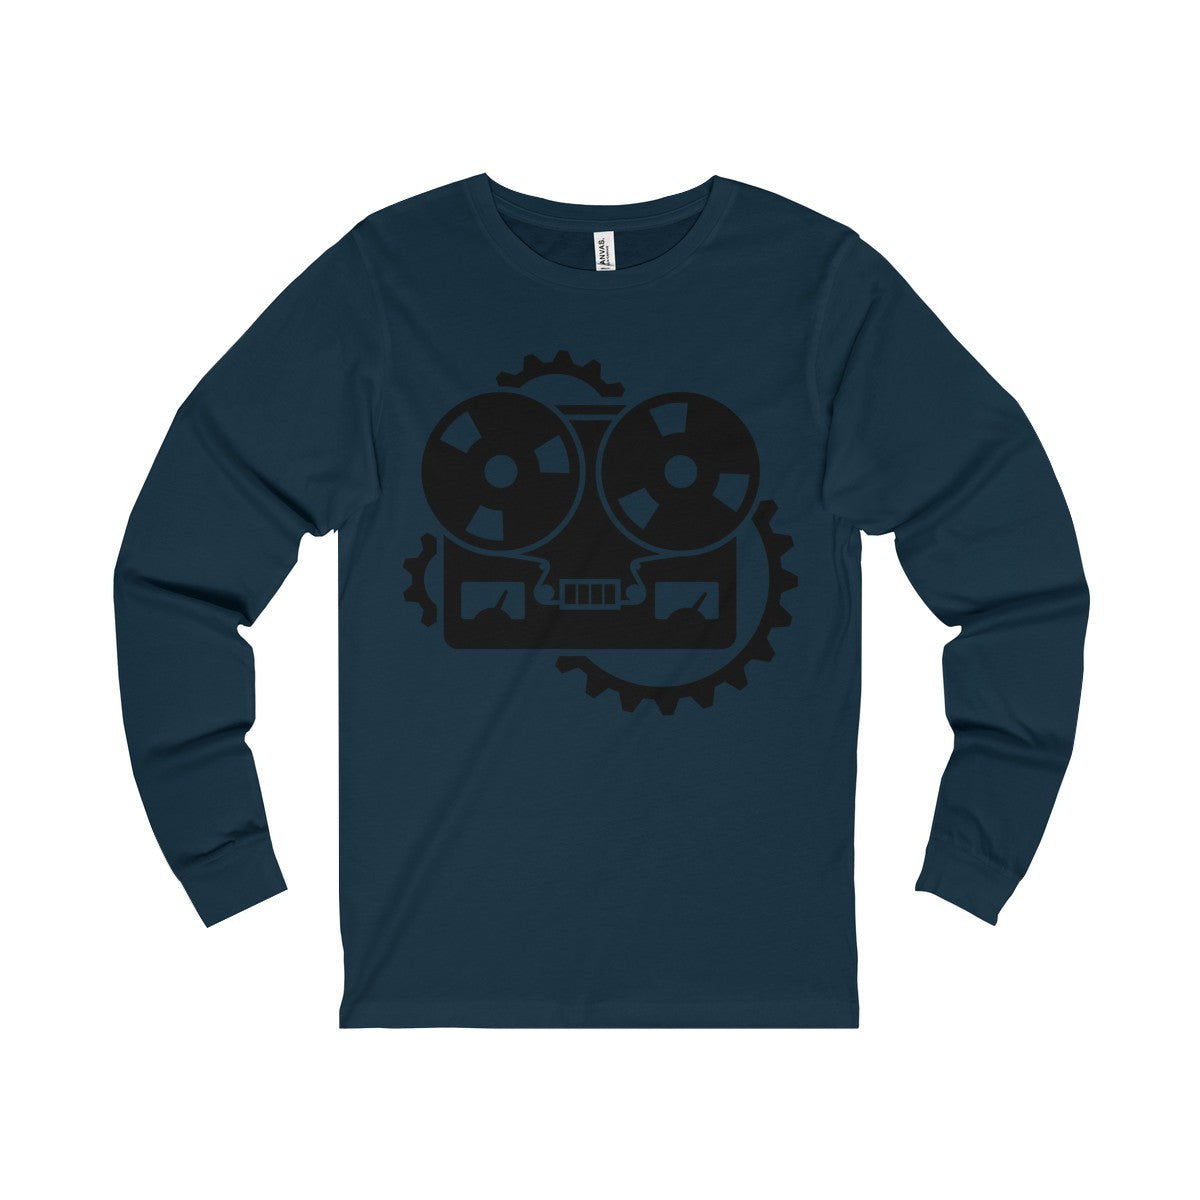 URM Tape Machine Jersey Long Sleeve Tee, Black Print